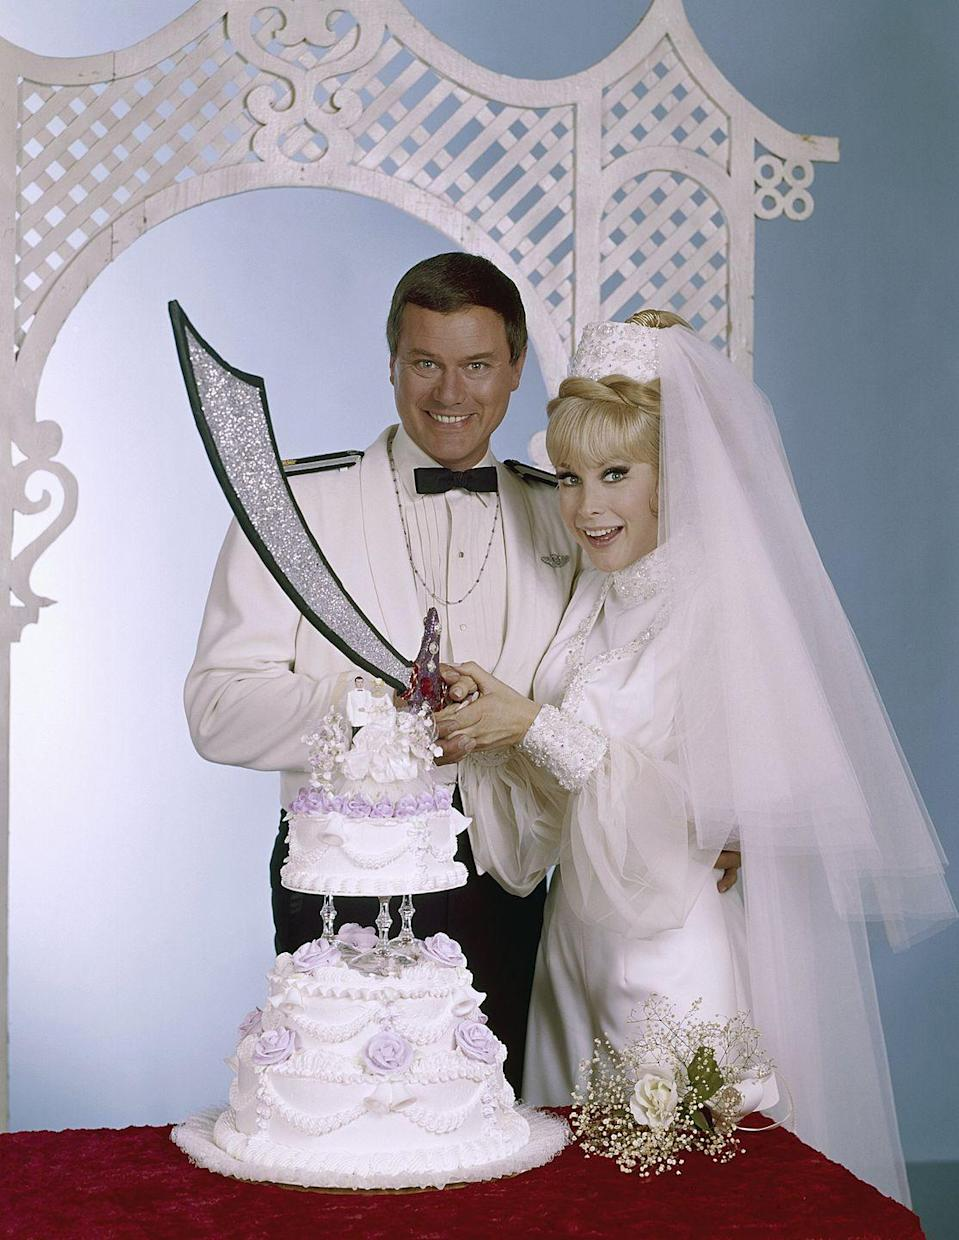 <p>Jeannie didn't wear her classic pink cropped top and harem pants when she wed <del>Master</del> Major Nelson in <em>I Dream of Jeannie. </em>Instead, she opted for a 'Jeannie inspired' white suit dress with tulle sleeves and, don't worry, her signature pony-tail. </p>